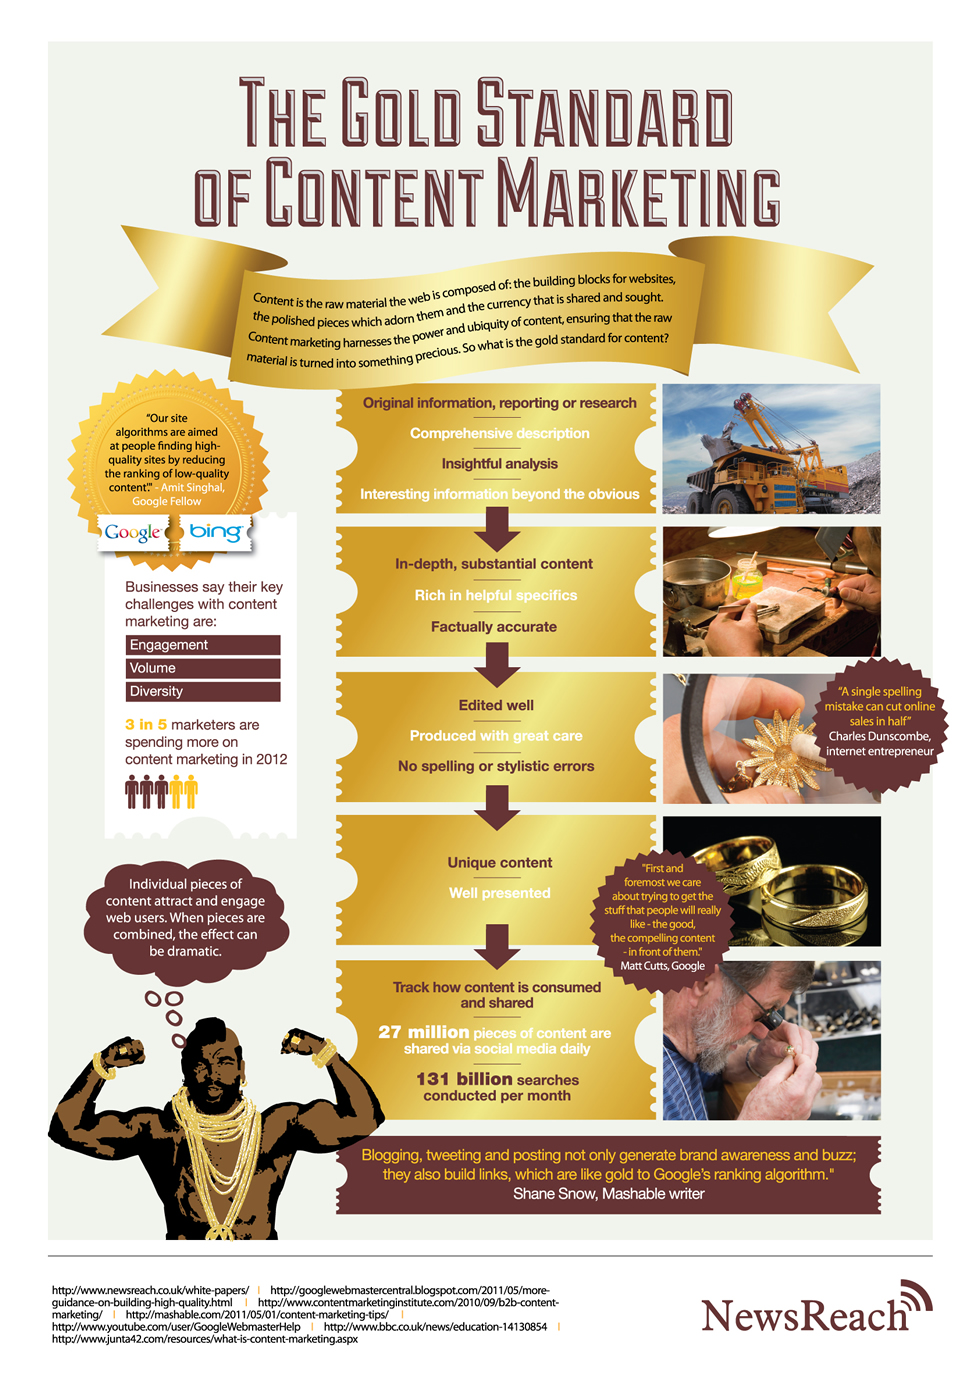 The Gold Standard of Content Marketing, CMI